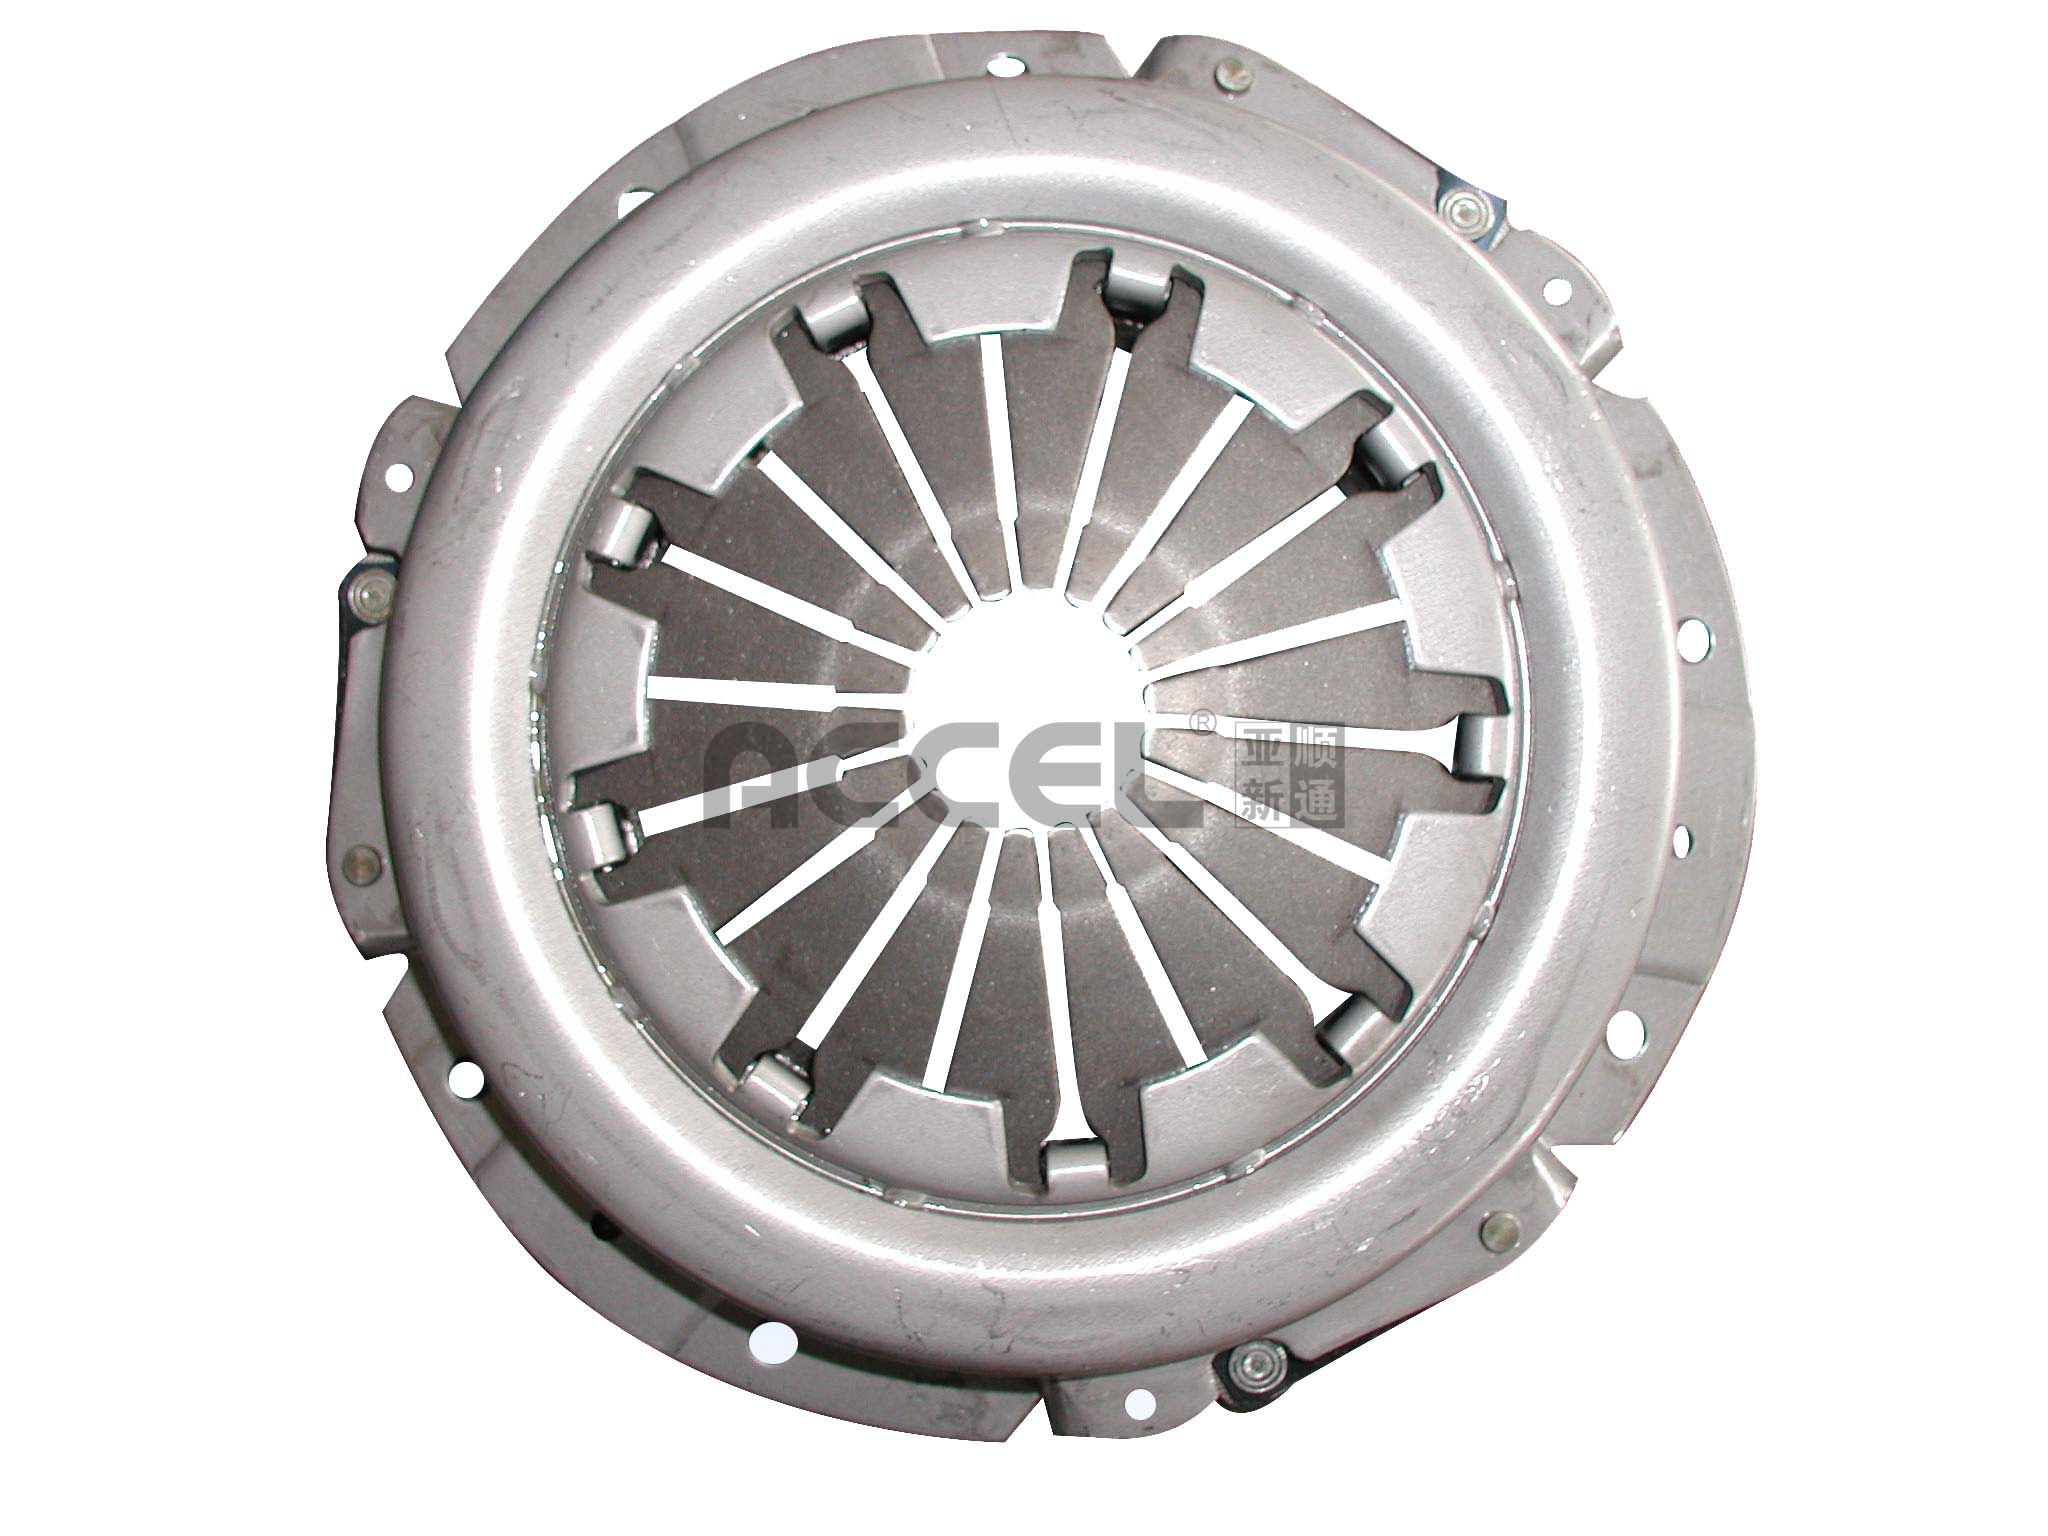 Clutch Cover/OE:NULL/215*145*250/CPG-006/PEUGEOT/LY260